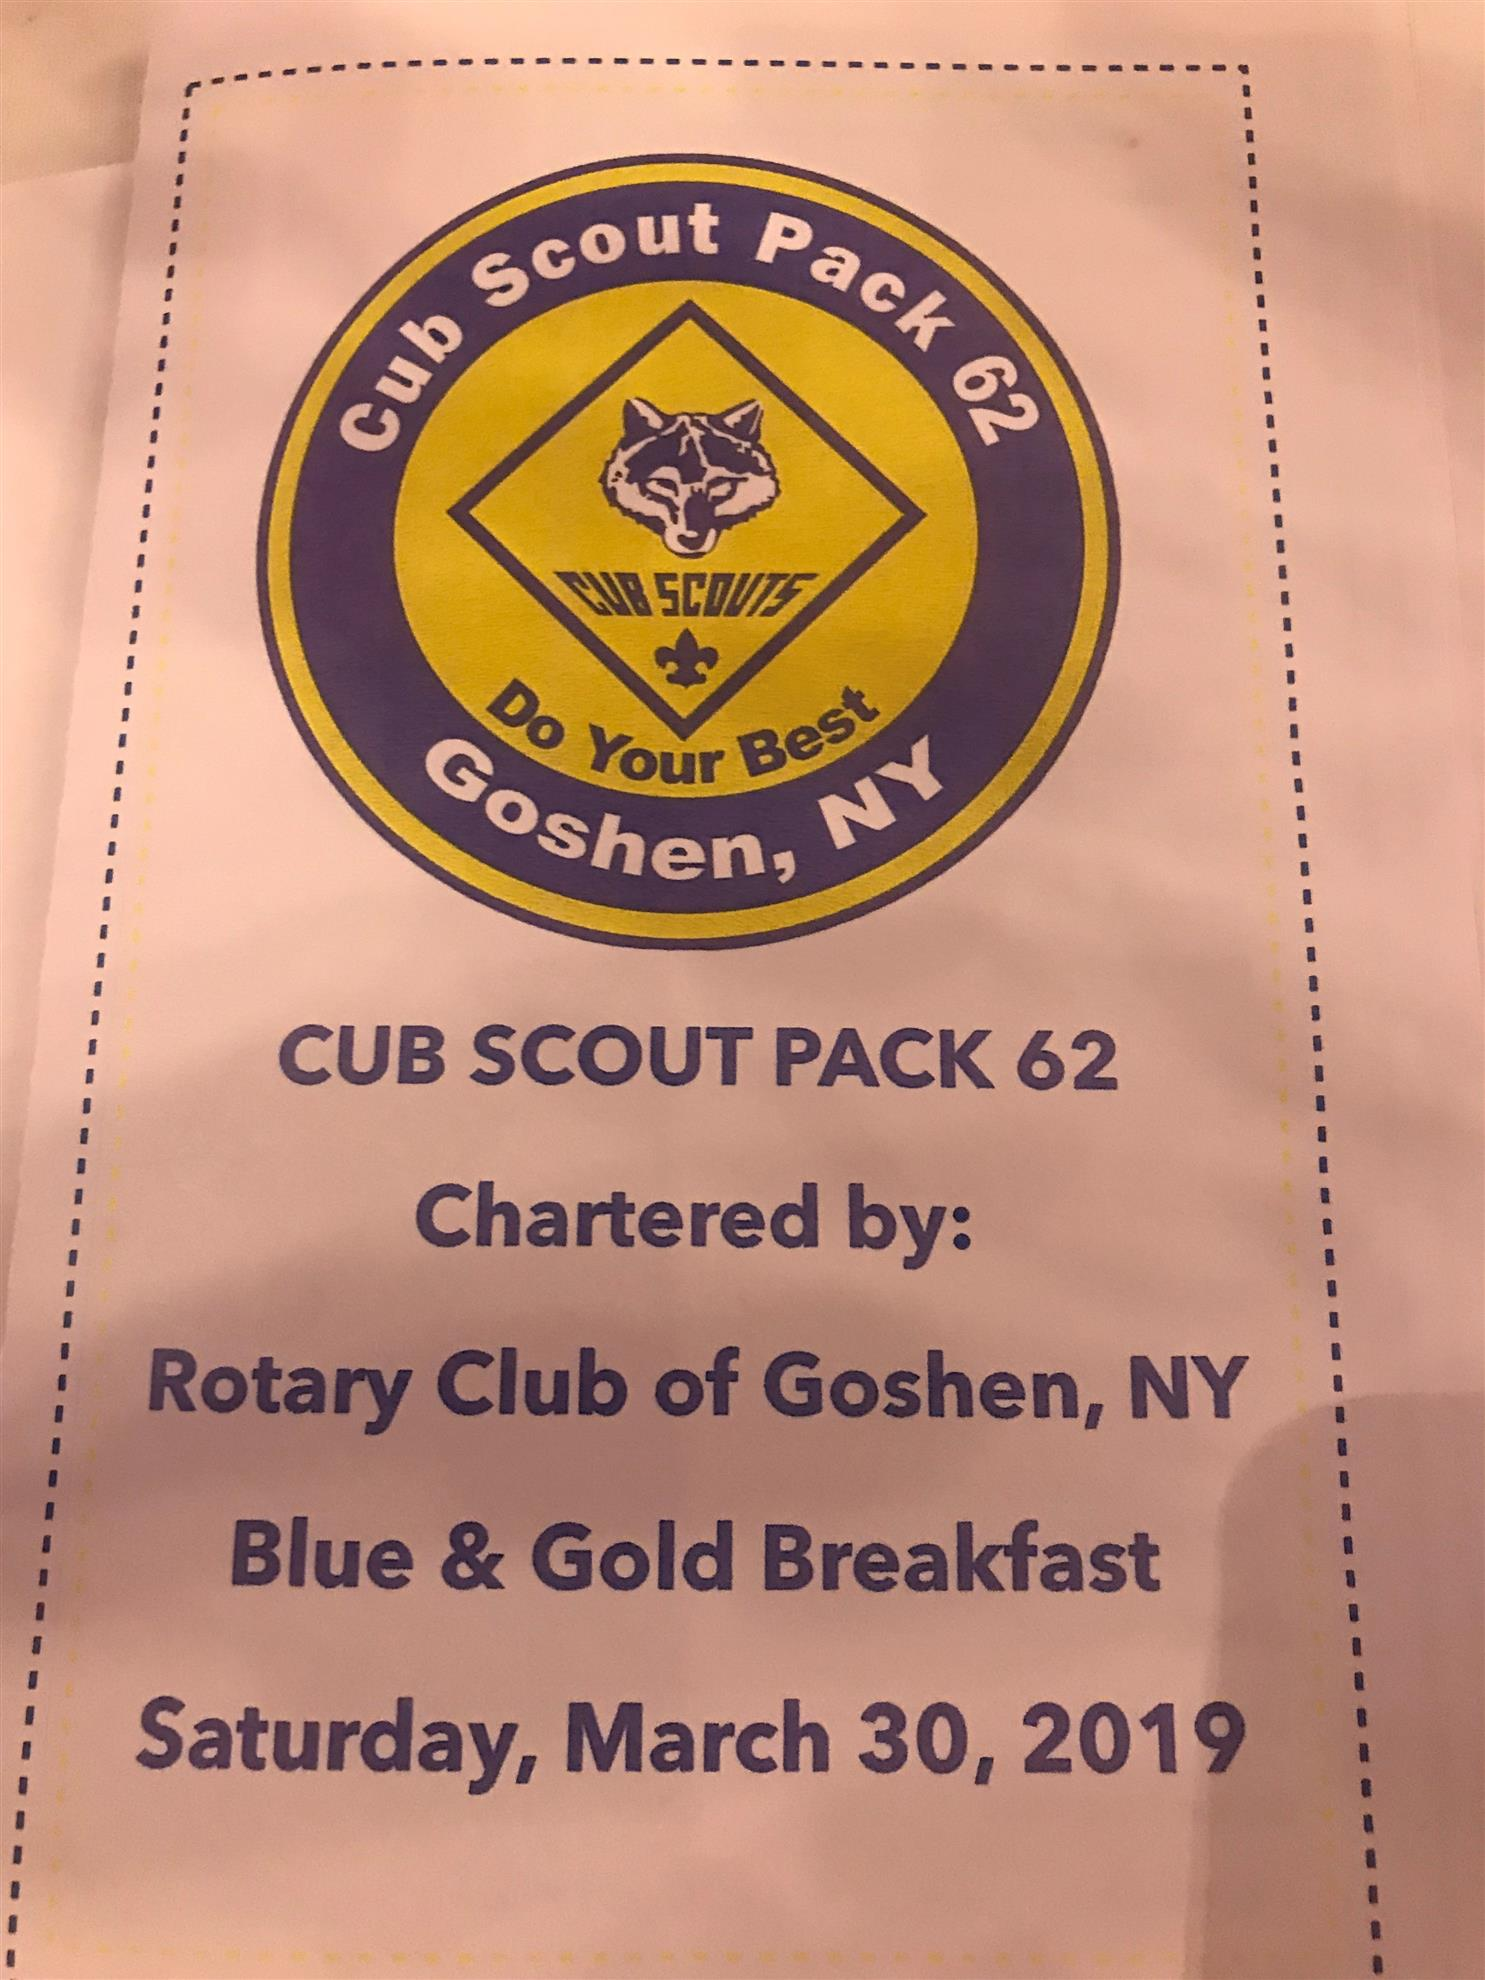 Cub Scouts to Boy Scouts   Rotary Club of Goshen